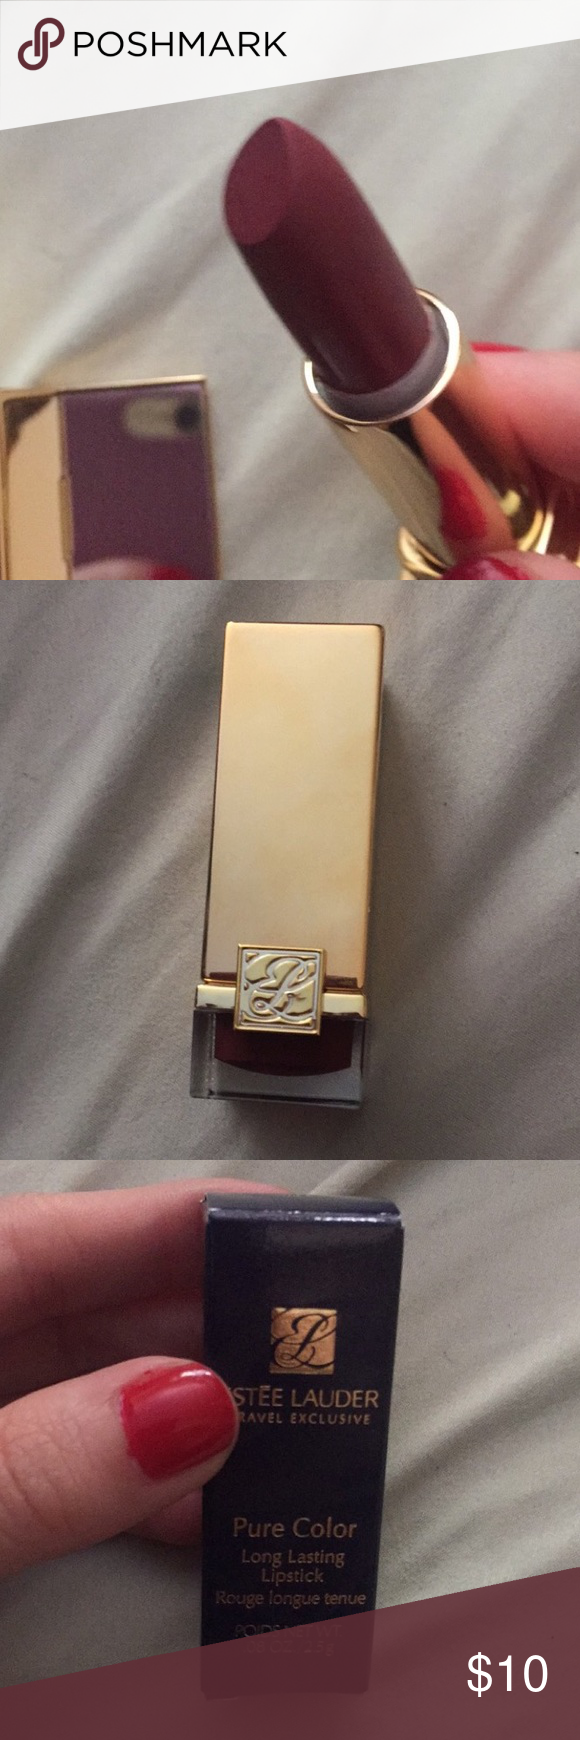 "ESTEE Lauder travel size lipstick Brand new and authentic ! Never used. In the color ""fig"" Makeup Lipstick"